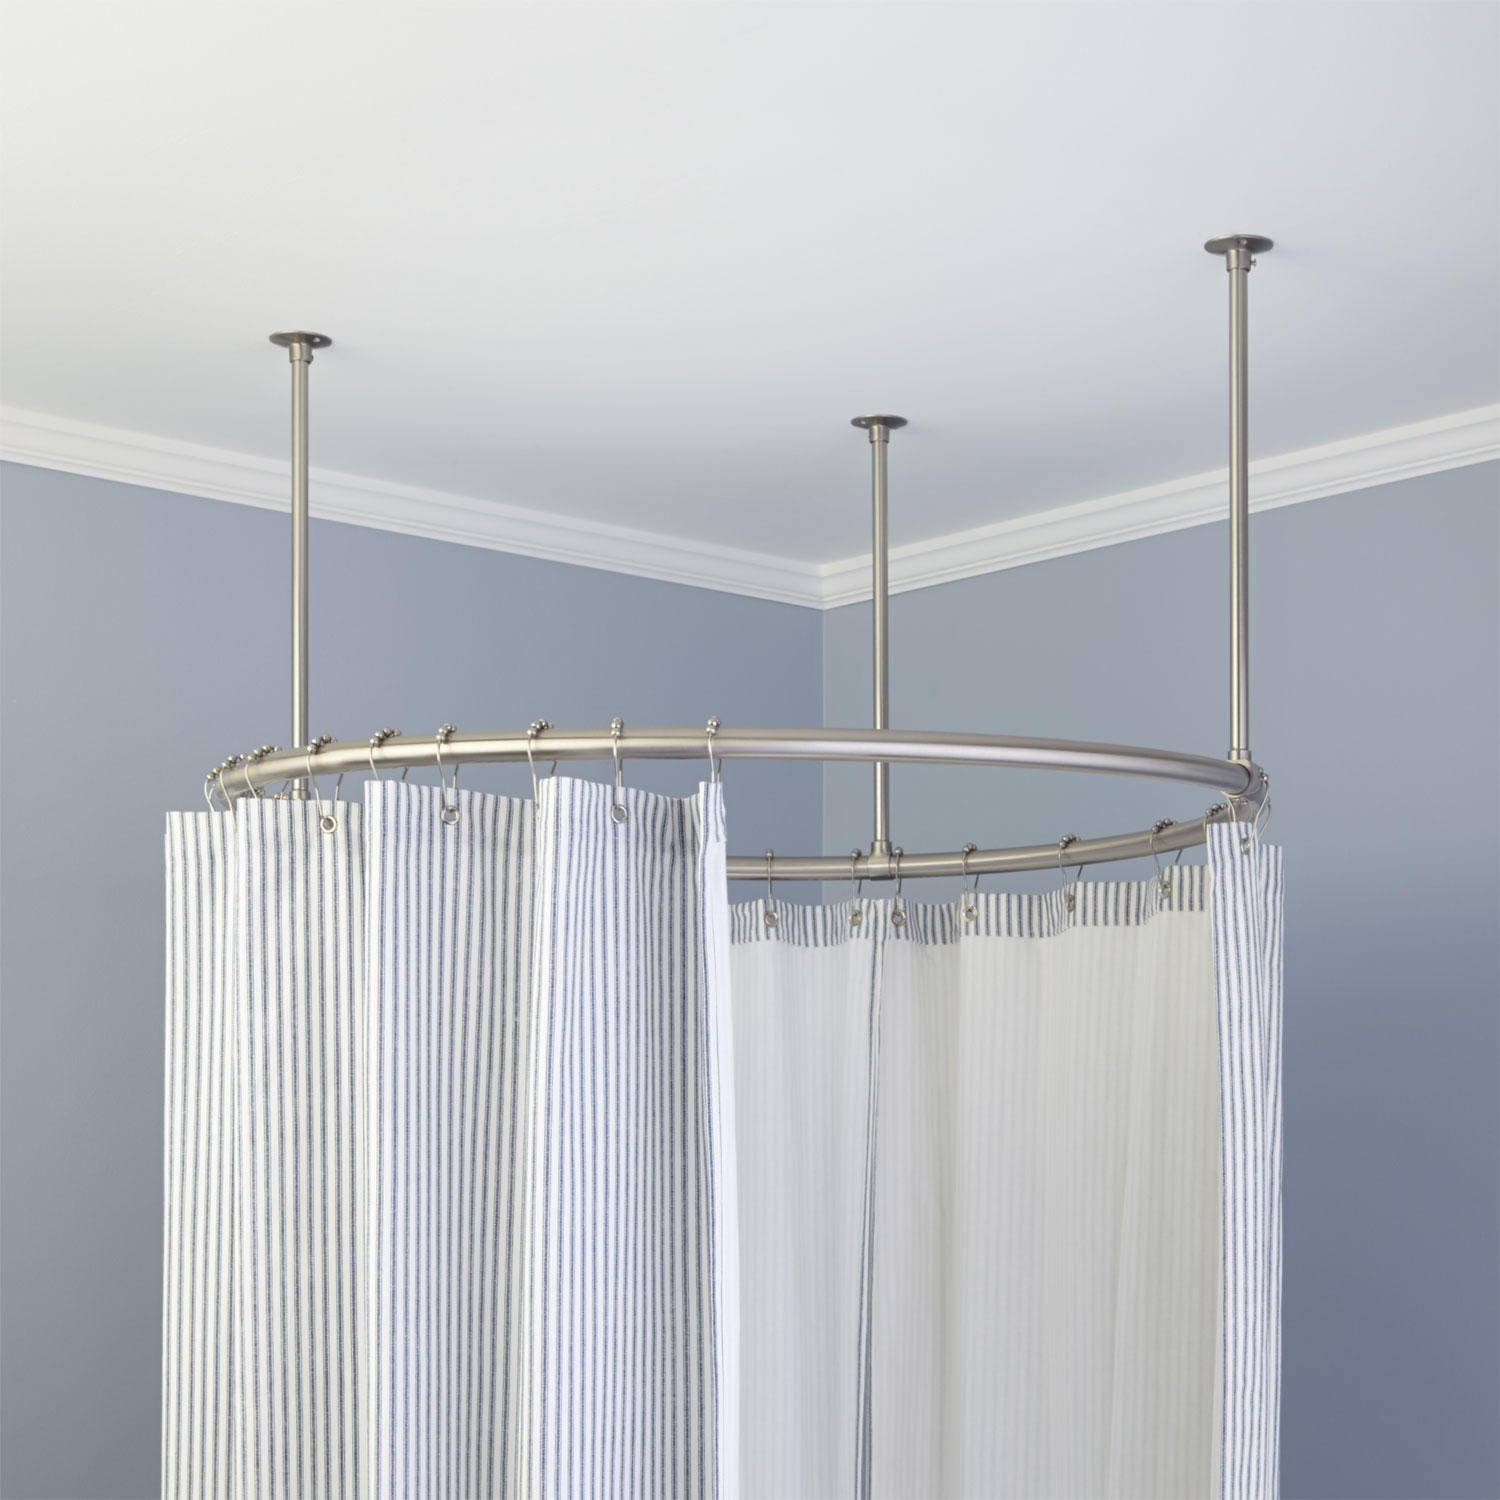 Shower Rod Light Duty Suspended Rod W Double Ceiling Support Curtain Rod Hardware Walmart